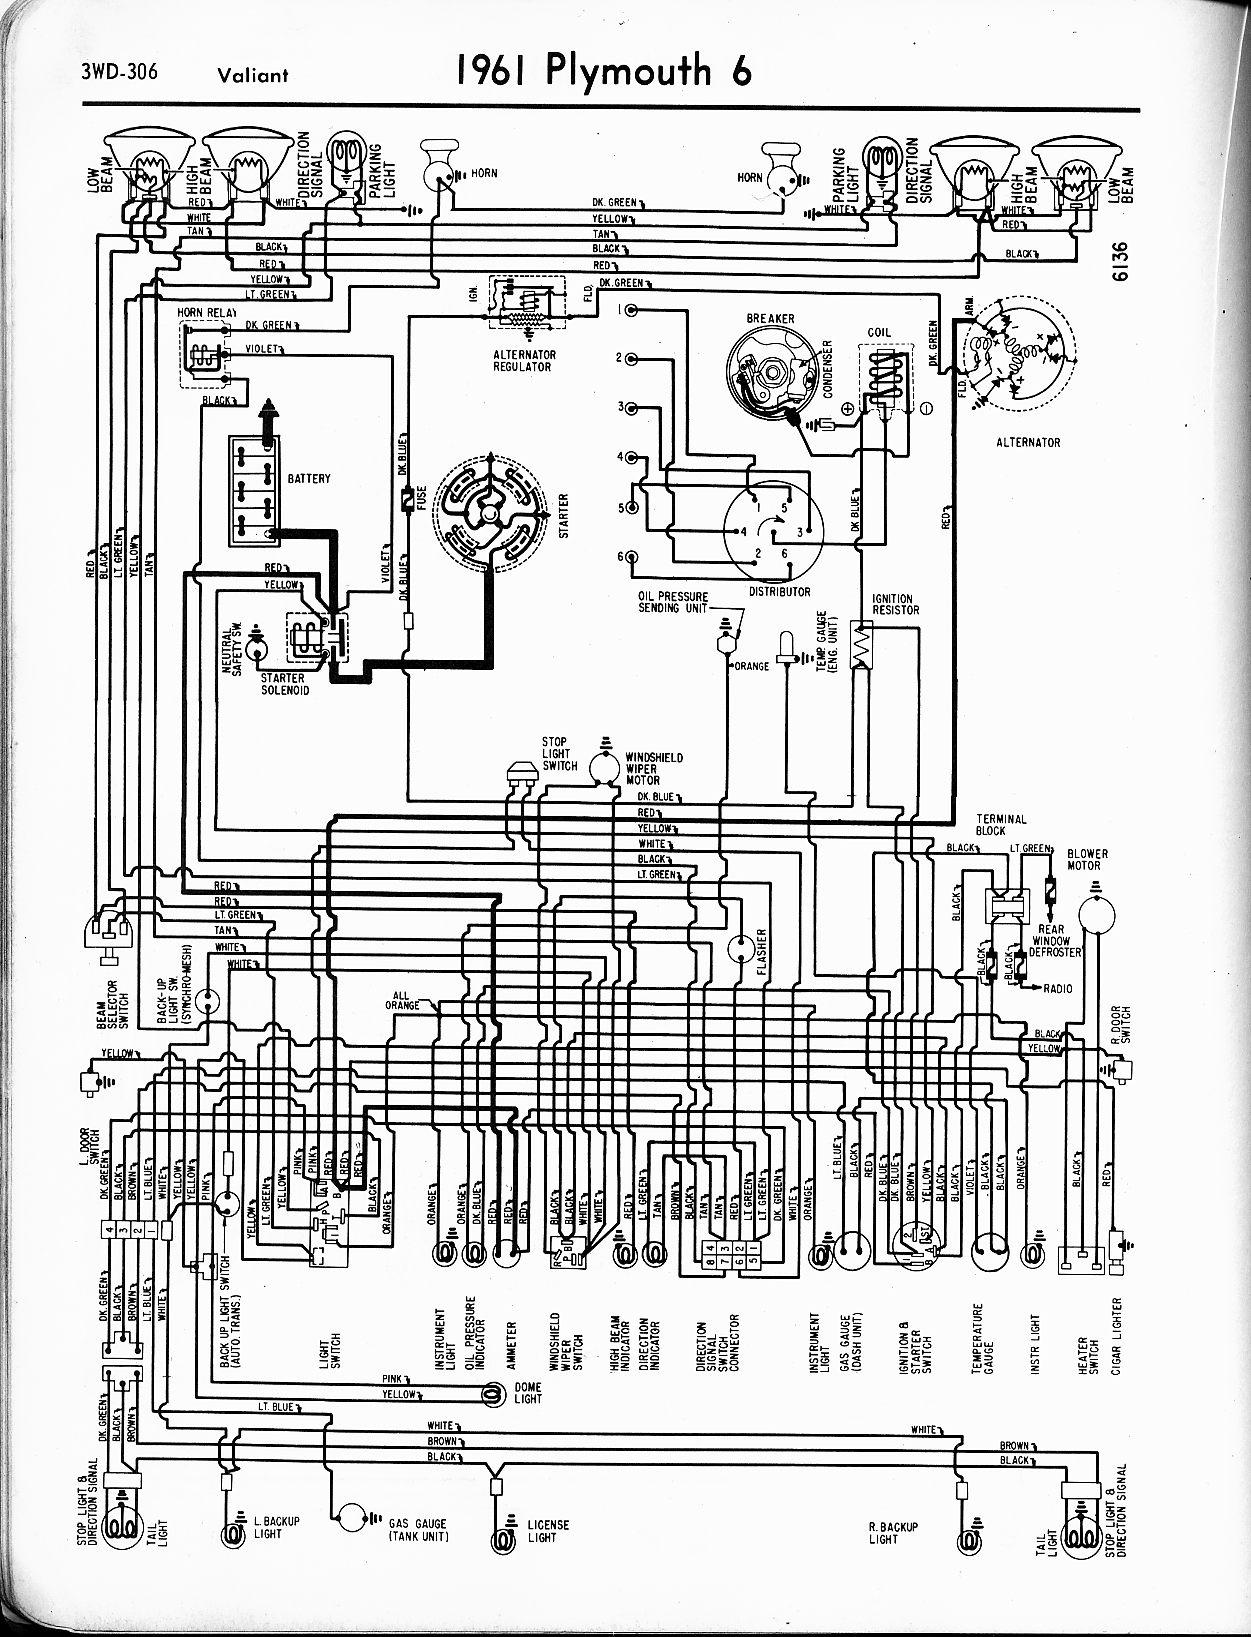 RX_4681] Plymouth Duster Wiring Diagram Likewise 1968 Plymouth Satellite  WiringSulf Phot Hendil Mohammedshrine Librar Wiring 101